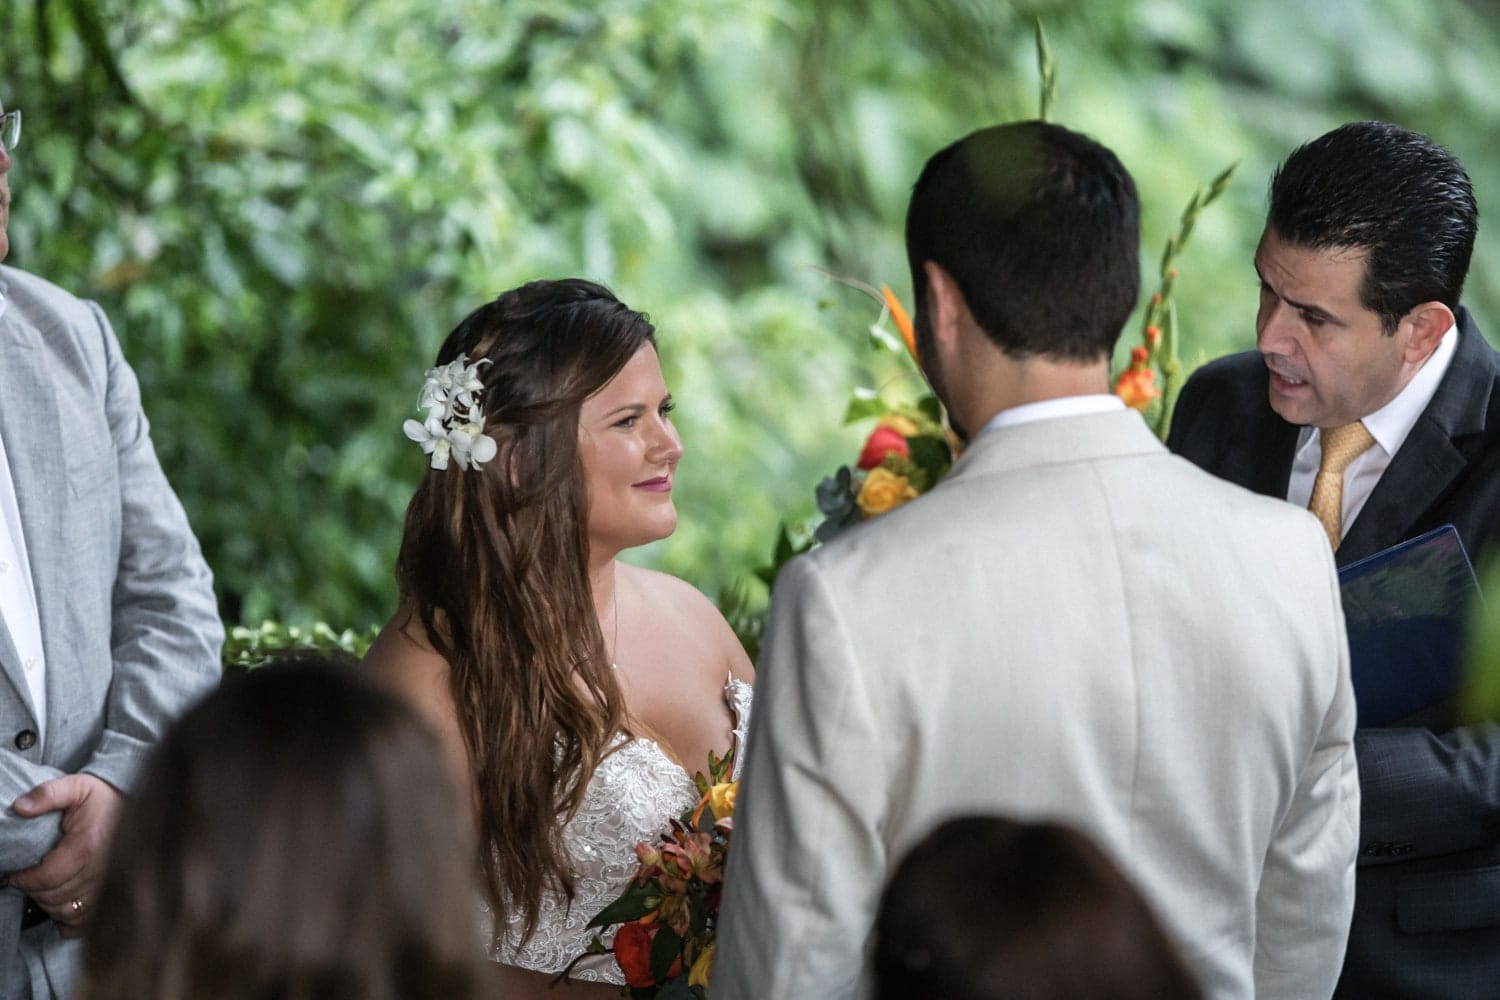 Bride and groom say vows at venue in cloud forest in Costa Rica.